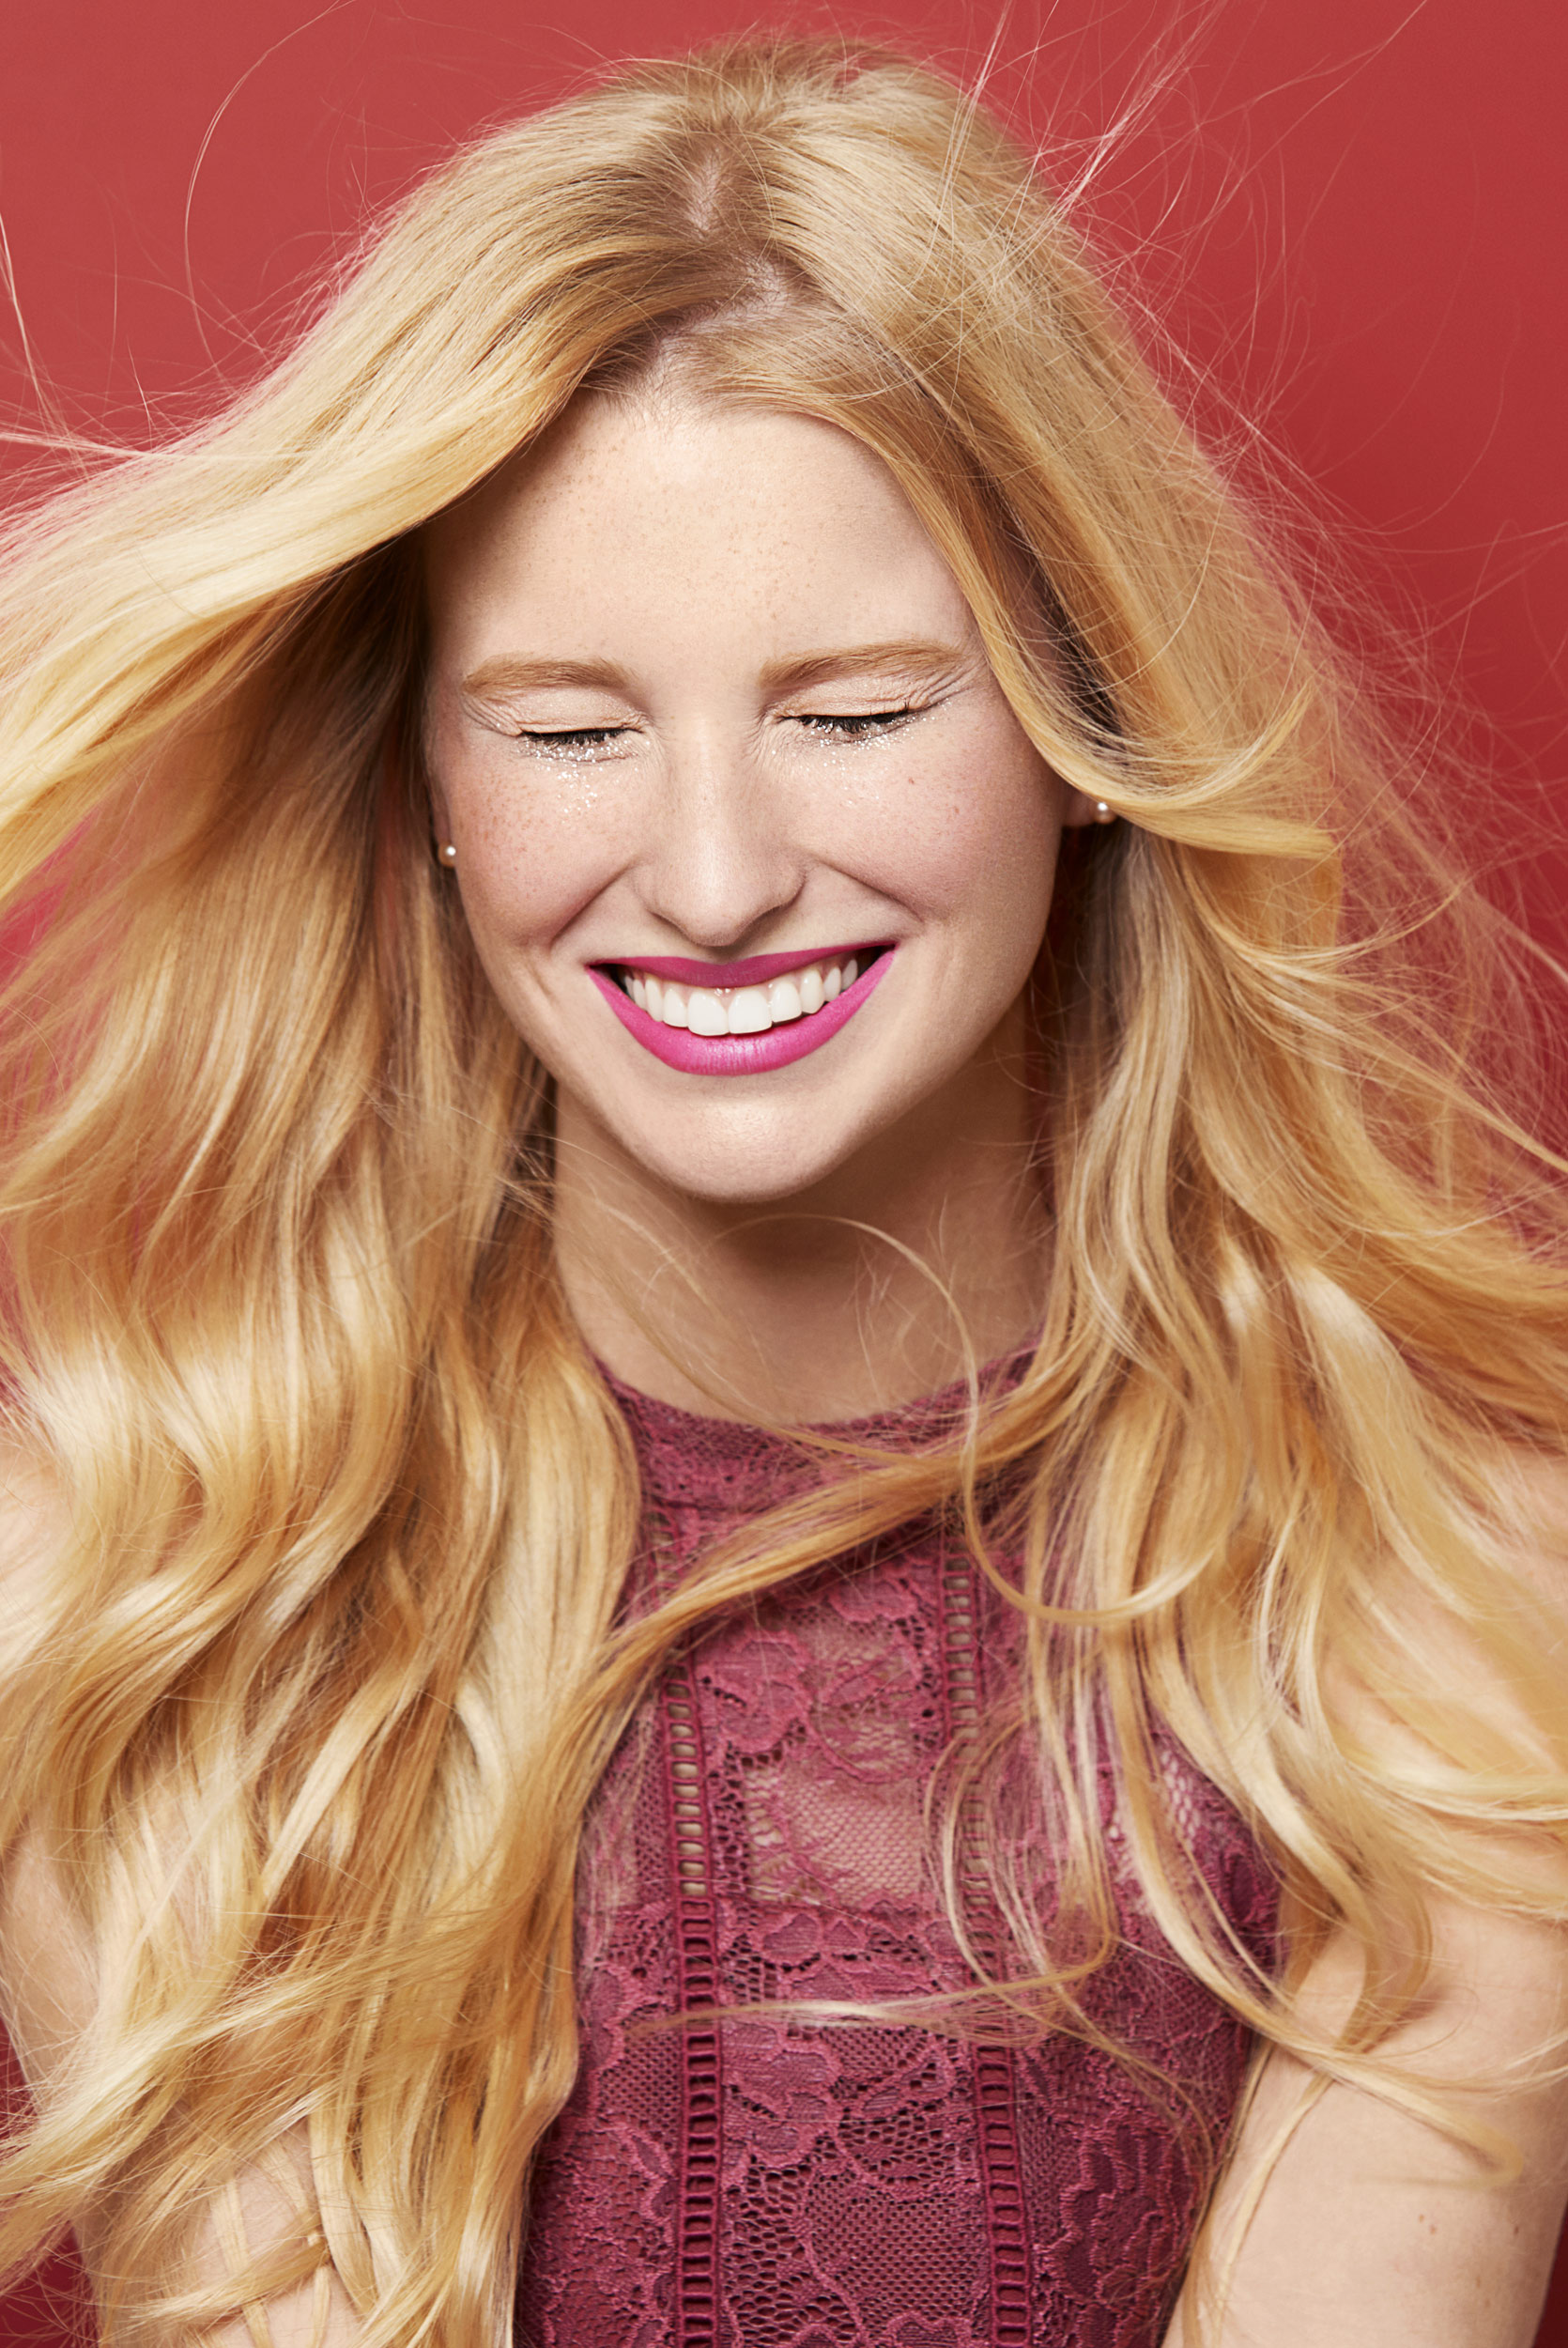 Girl with blonde hair smiling. Kim Genevieve Los Angeles Lifestyle Photographer